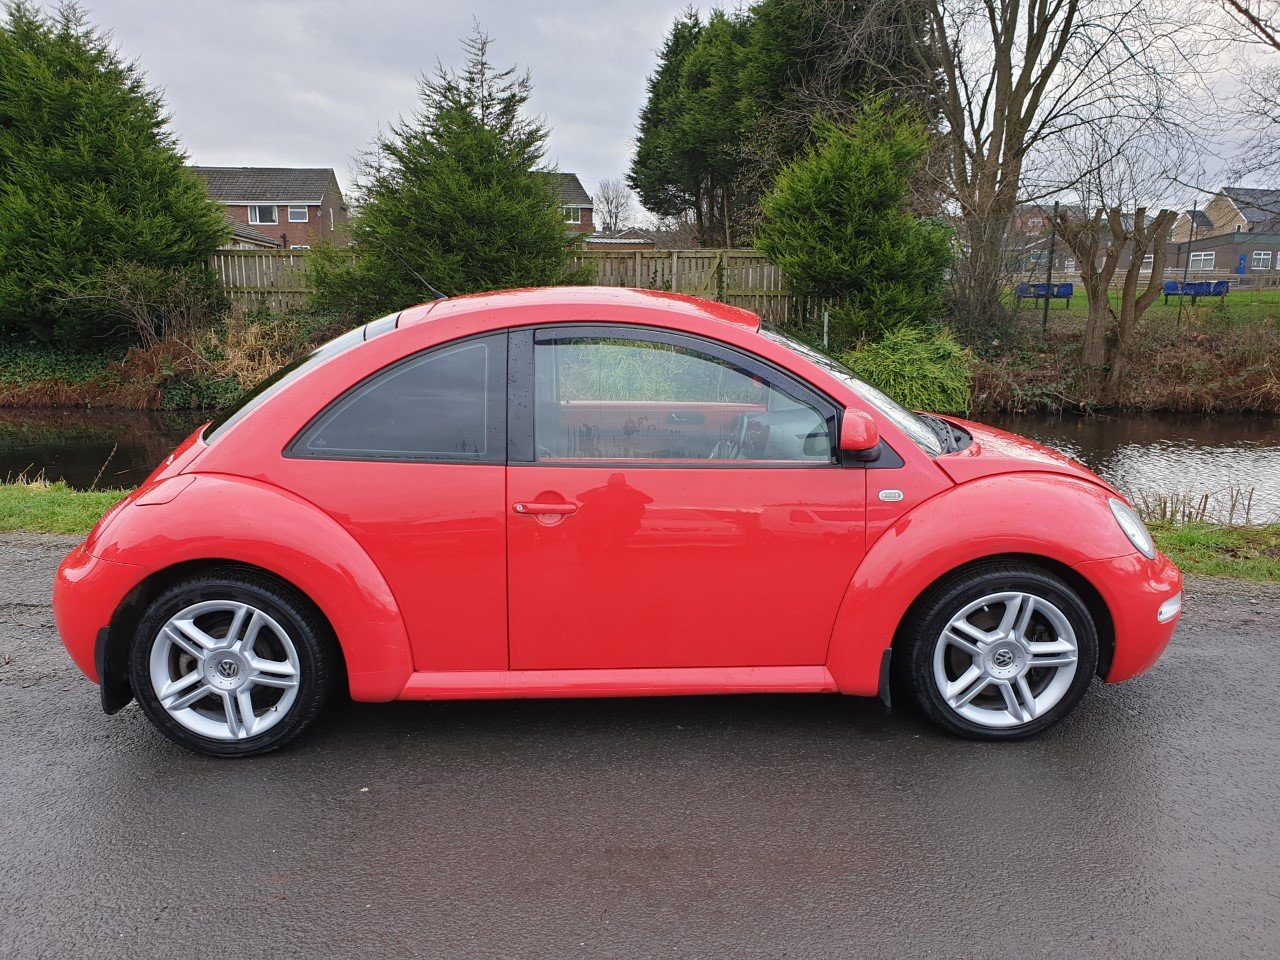 2002 Volkswagen Beetle V5 2.3 With full read and black leather. For Sale (picture 2 of 6)